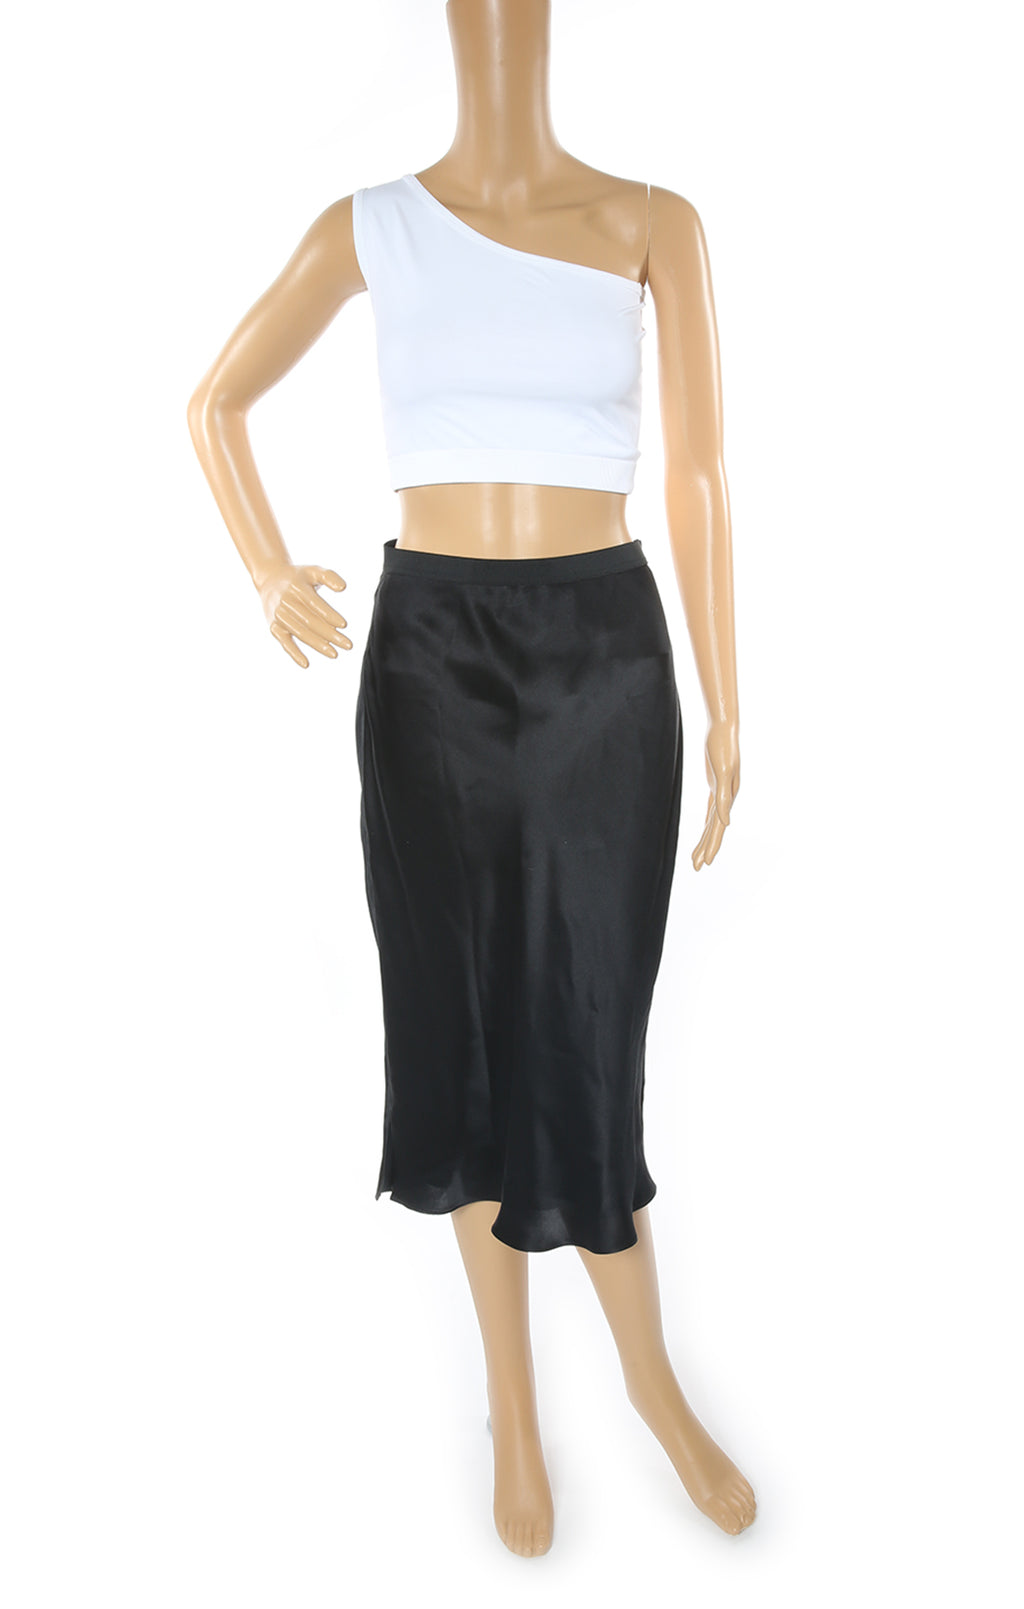 Front view of CAMI Skirt Size: Small